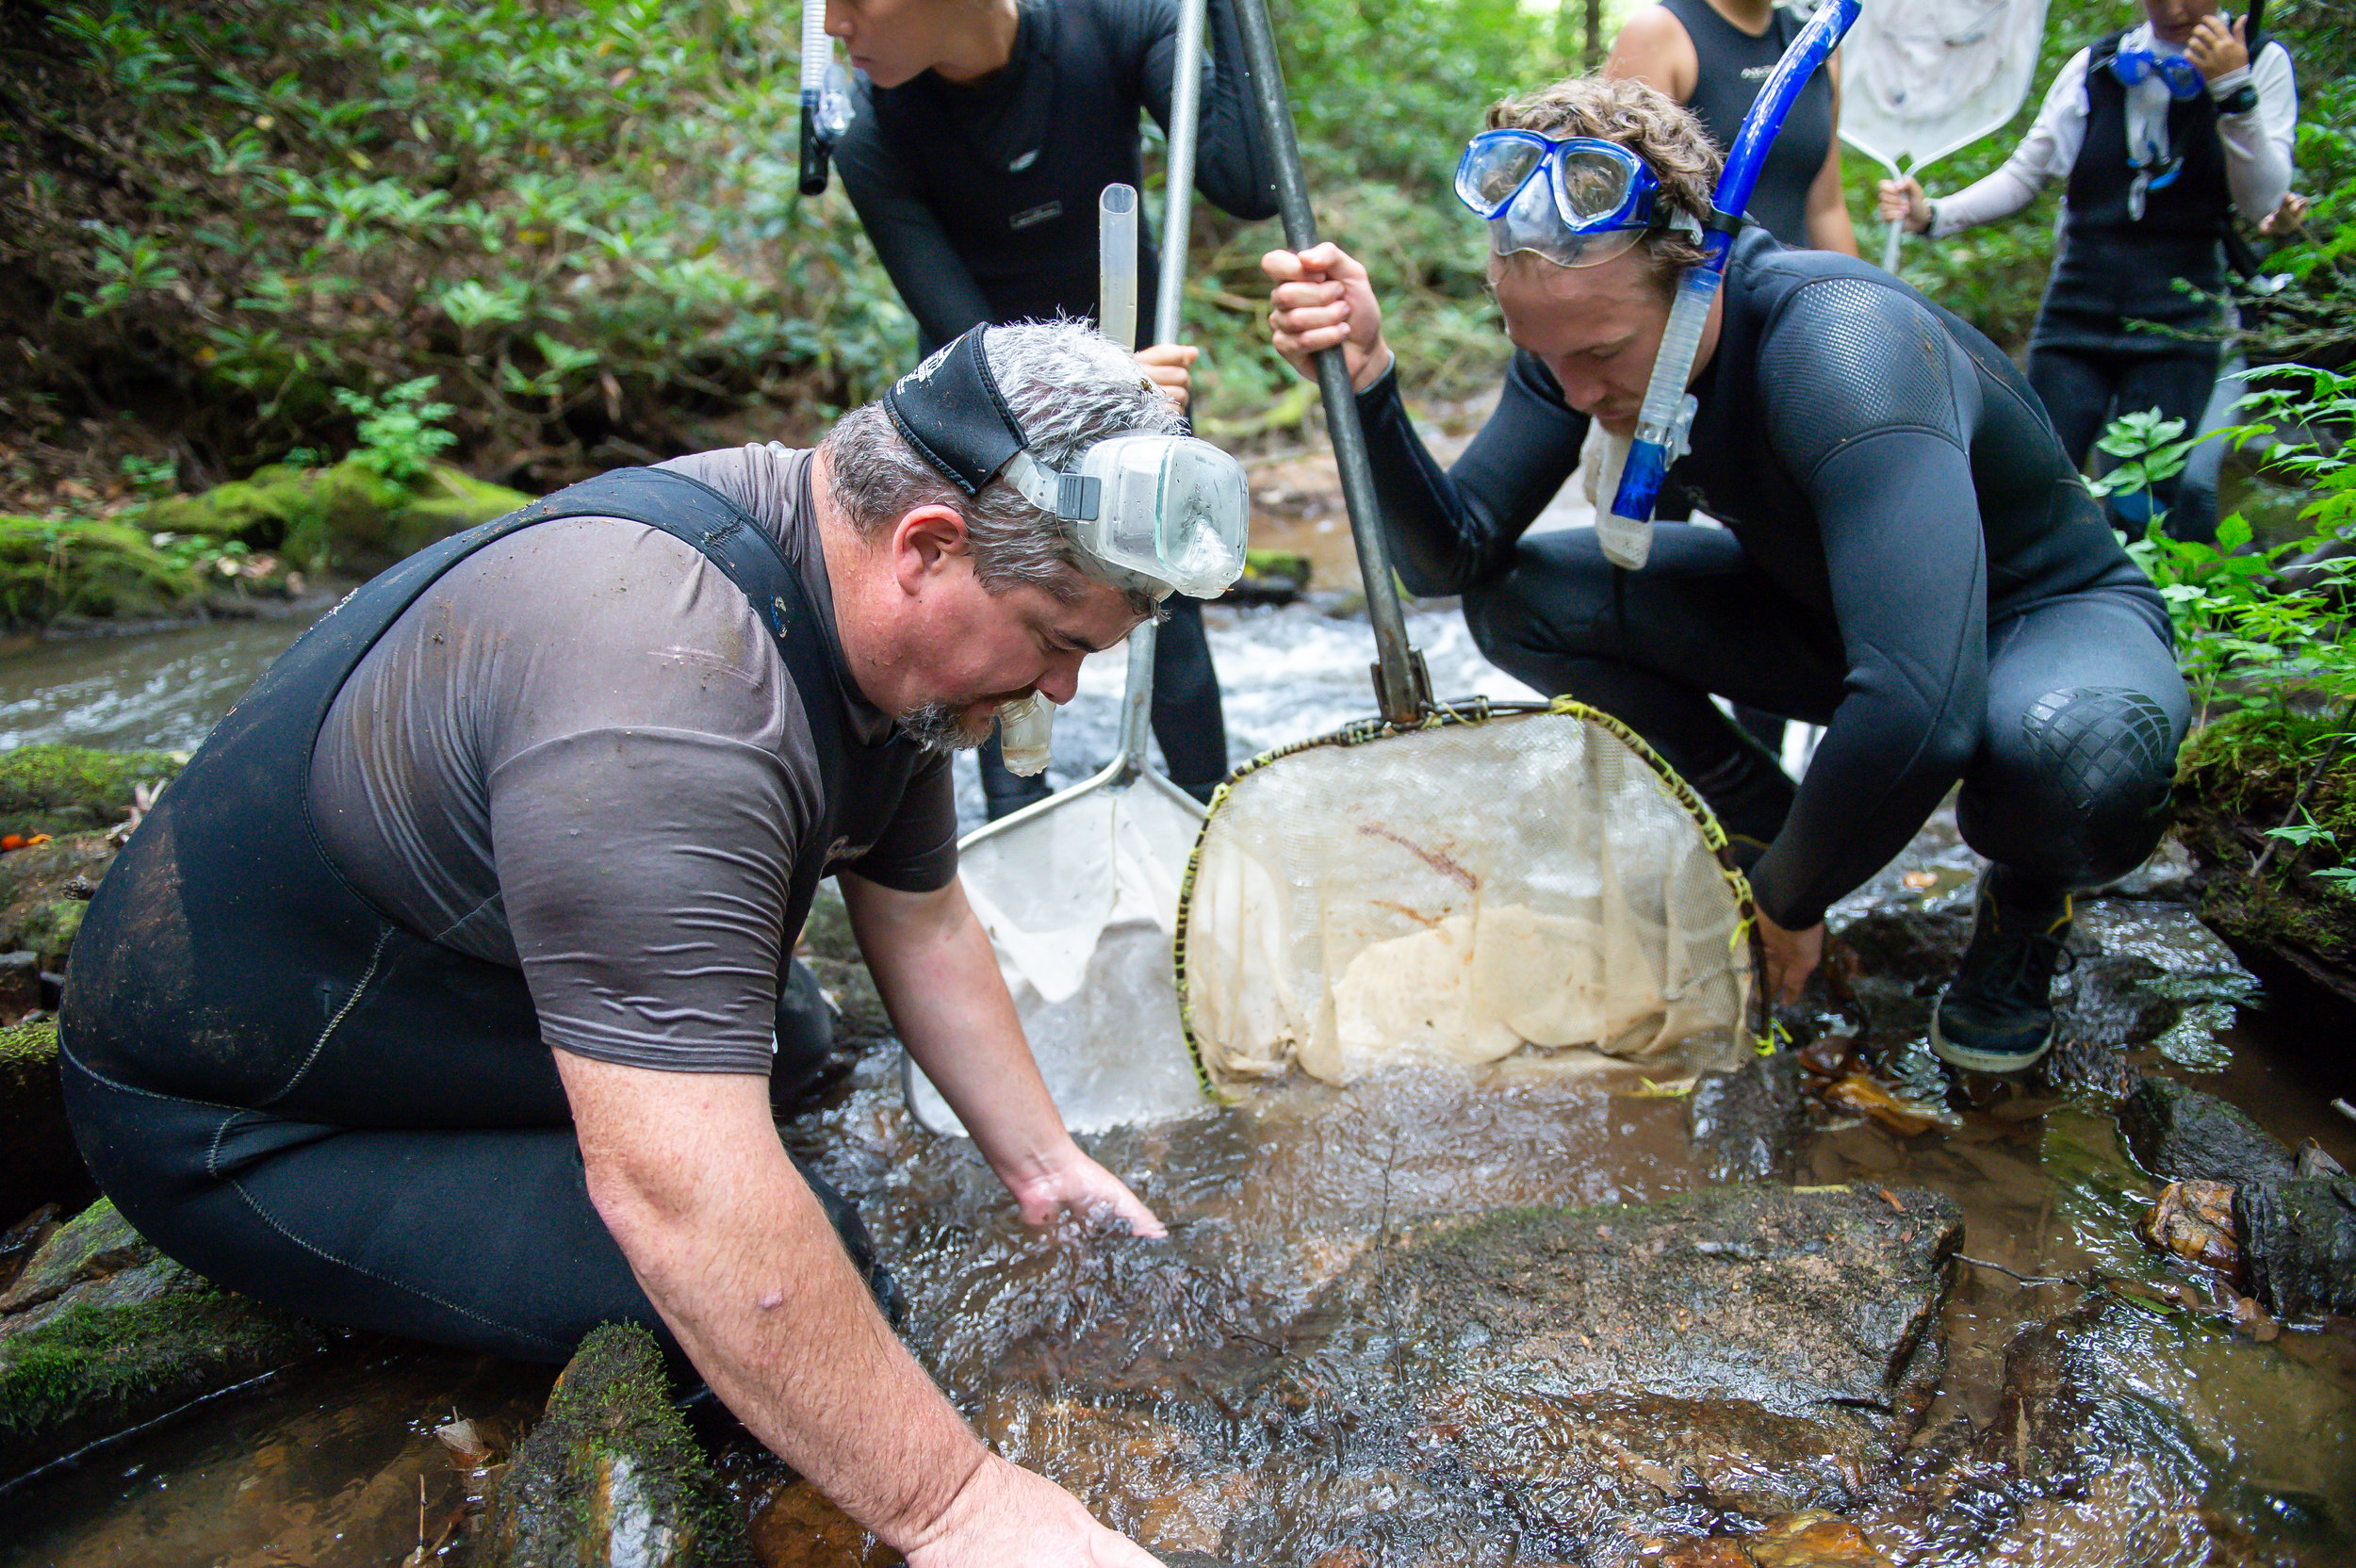 (From left) Georgia Department of Natural Resources wildlife biologist Thomas Floyd and Georgia Department of Transportation ecologist Nathan Polley prepare to lift a rock in hopes of netting a hellbender during a scheduled survey of the Eastern hellbender in the Chattahoochee National Forest in North Georgia Friday, Aug. 31, 2018.